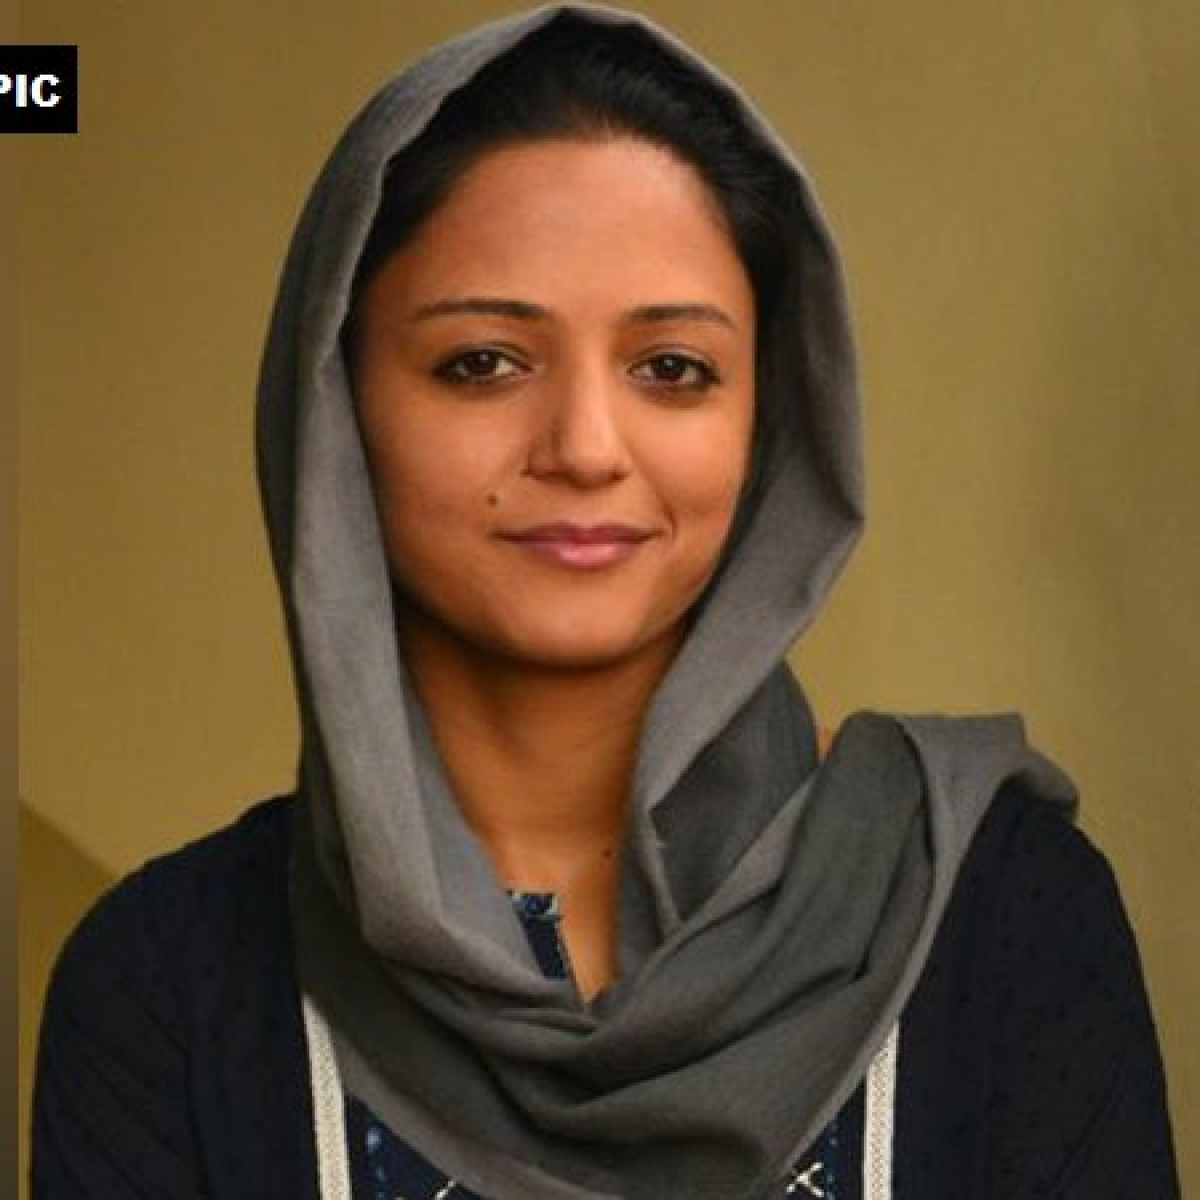 Sedition case: Give 10-day notice to Shehla Rashid before arresting her